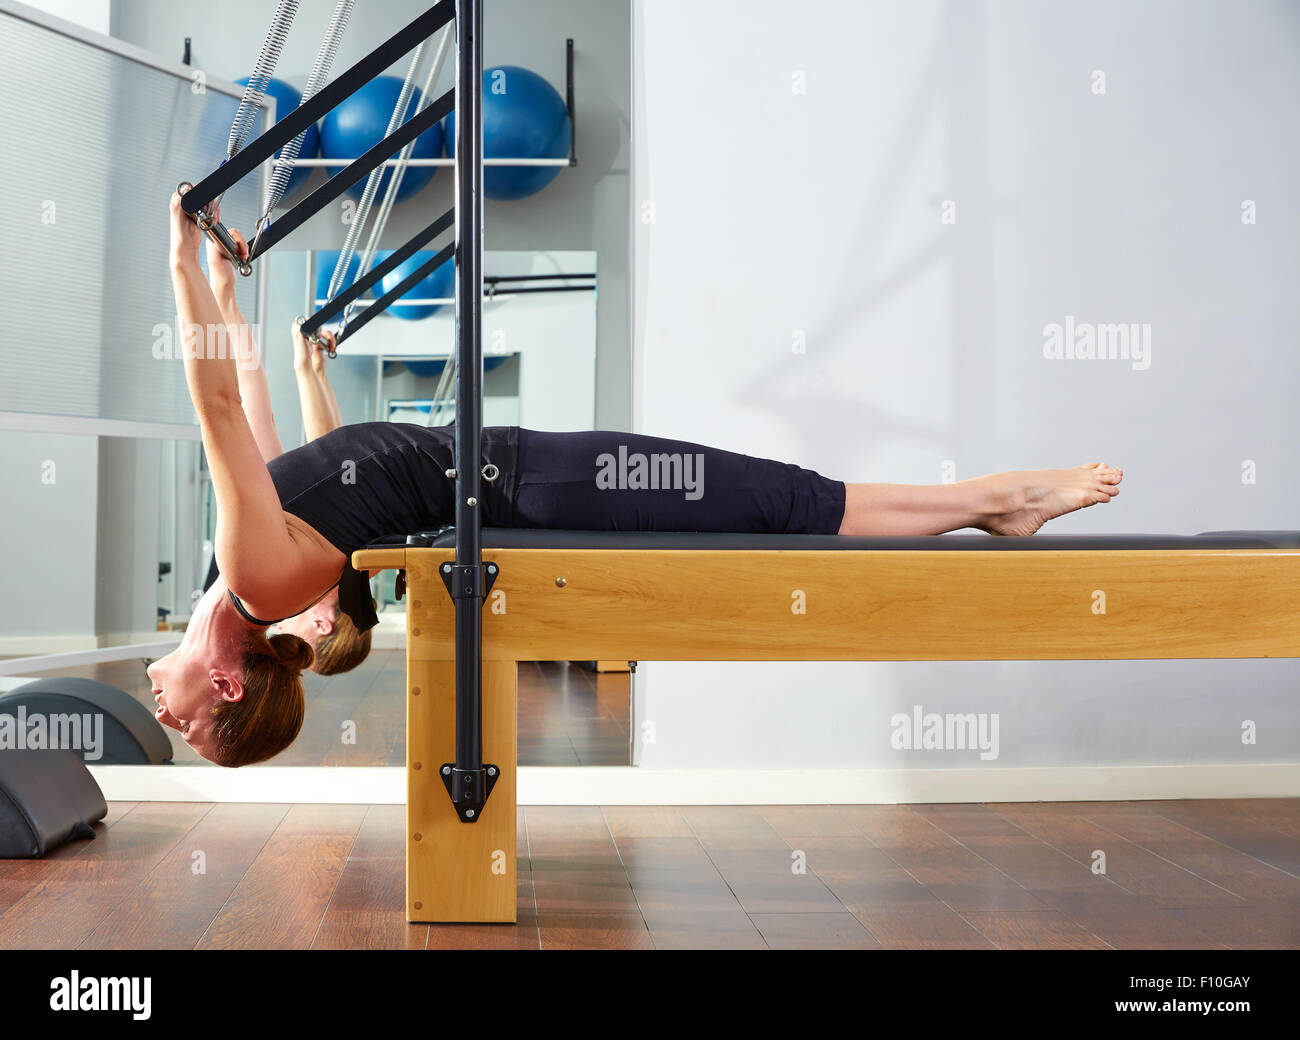 Pilates woman in reformer exercise at gym indoor - Stock Image